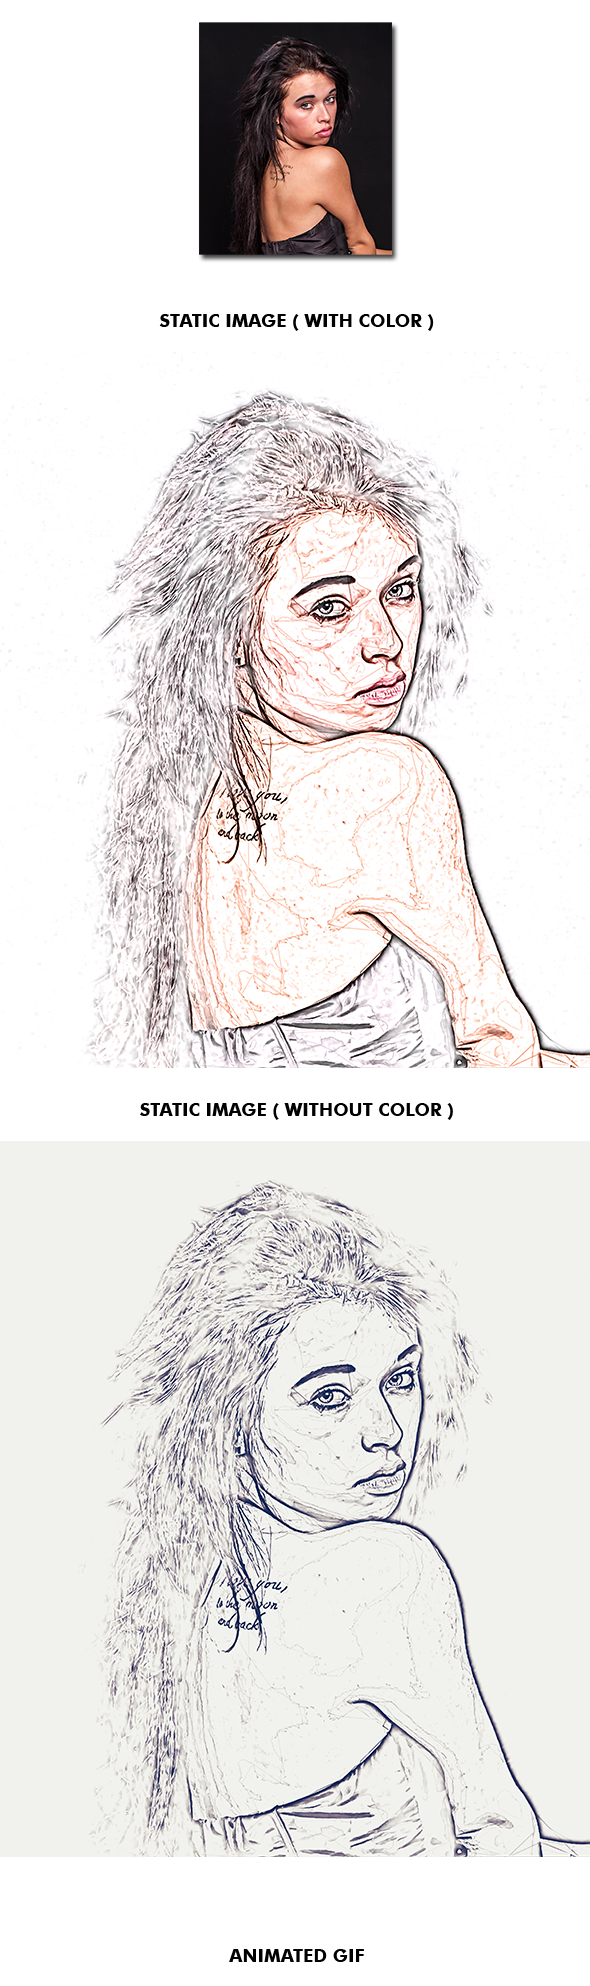 Drawing photoshop dynamic. Gif animated sketch action